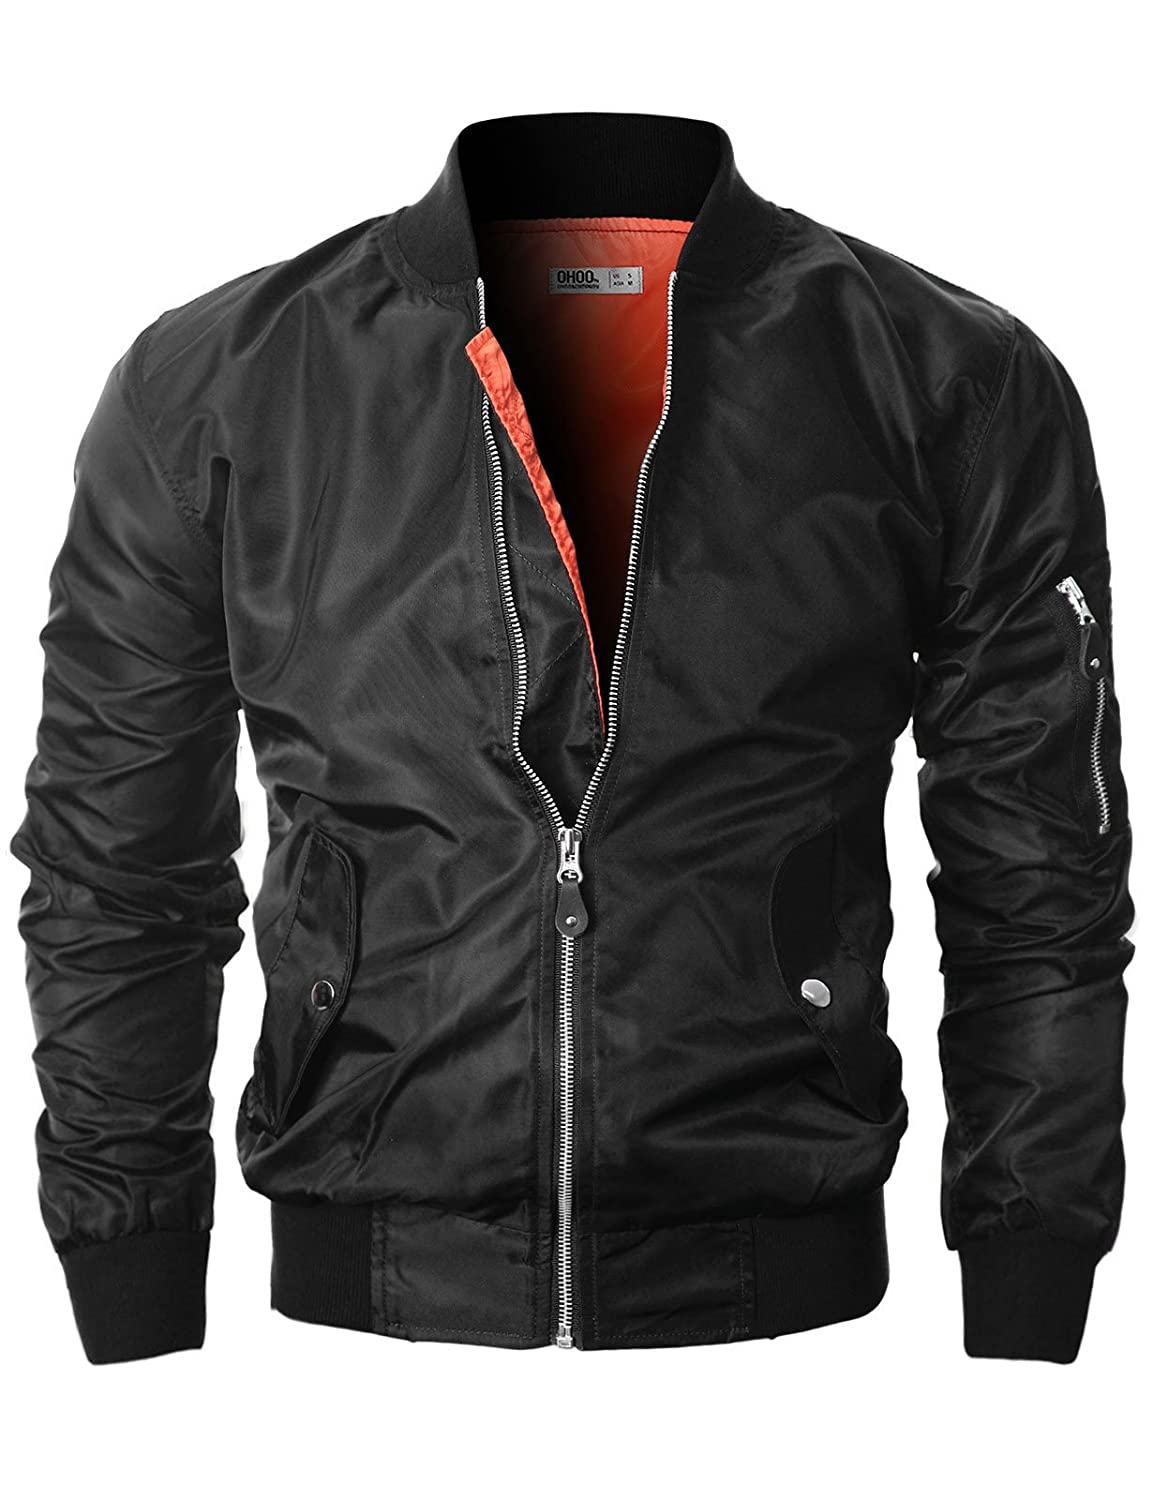 fb6fead309d Lightweight Jackets : Online Shopping for Clothing, Shoes, Jewelry ...